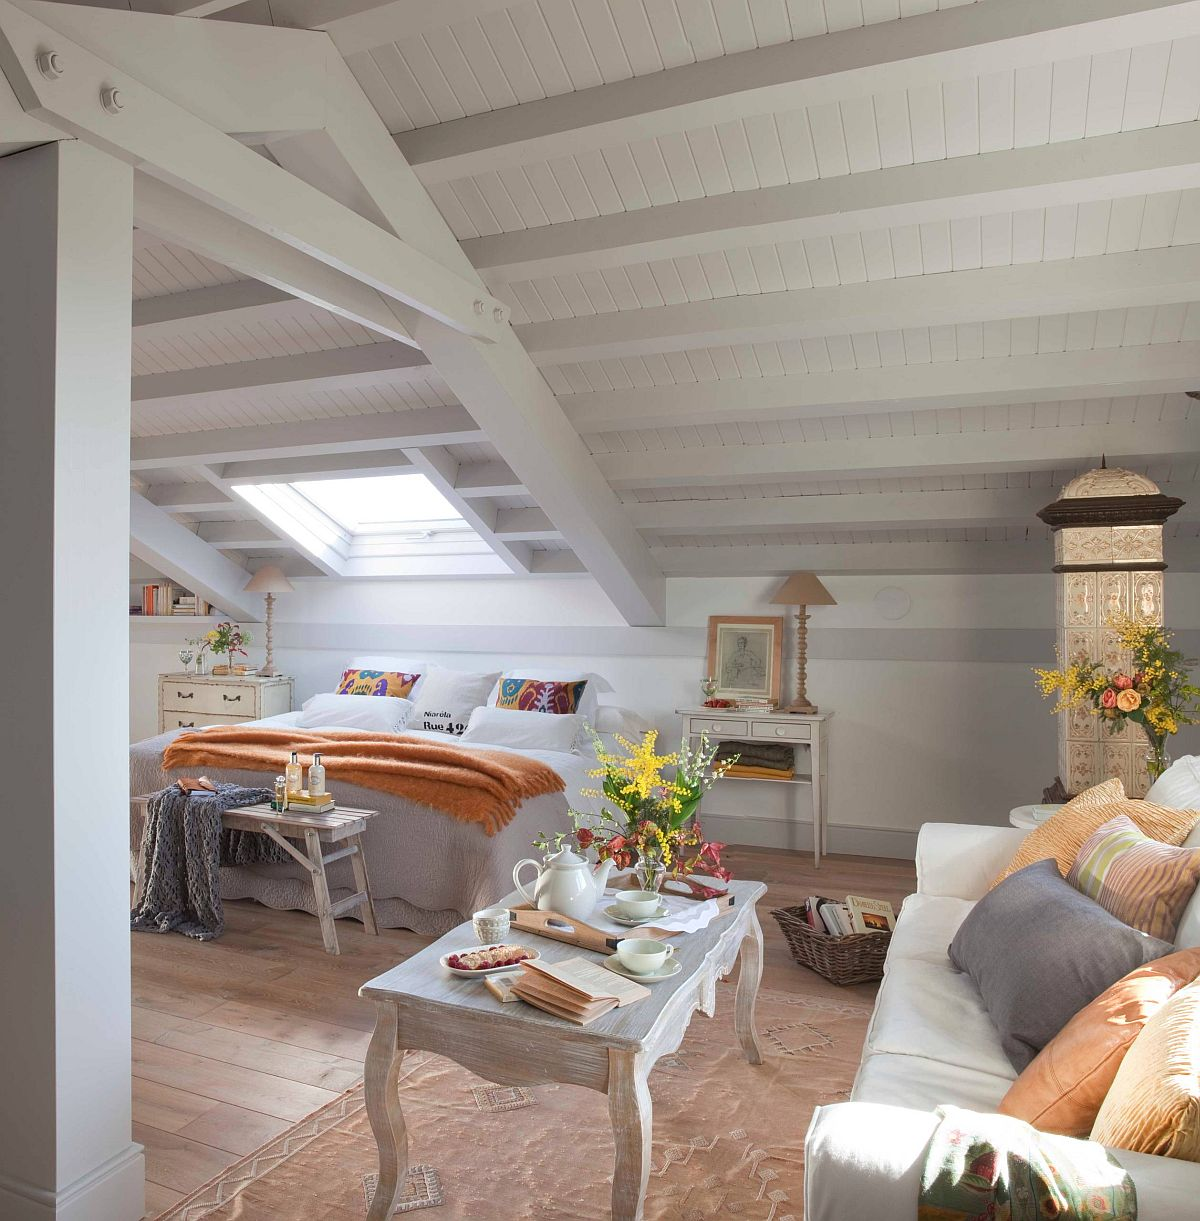 More expansive shabby chic style bedroom for the spacious attic